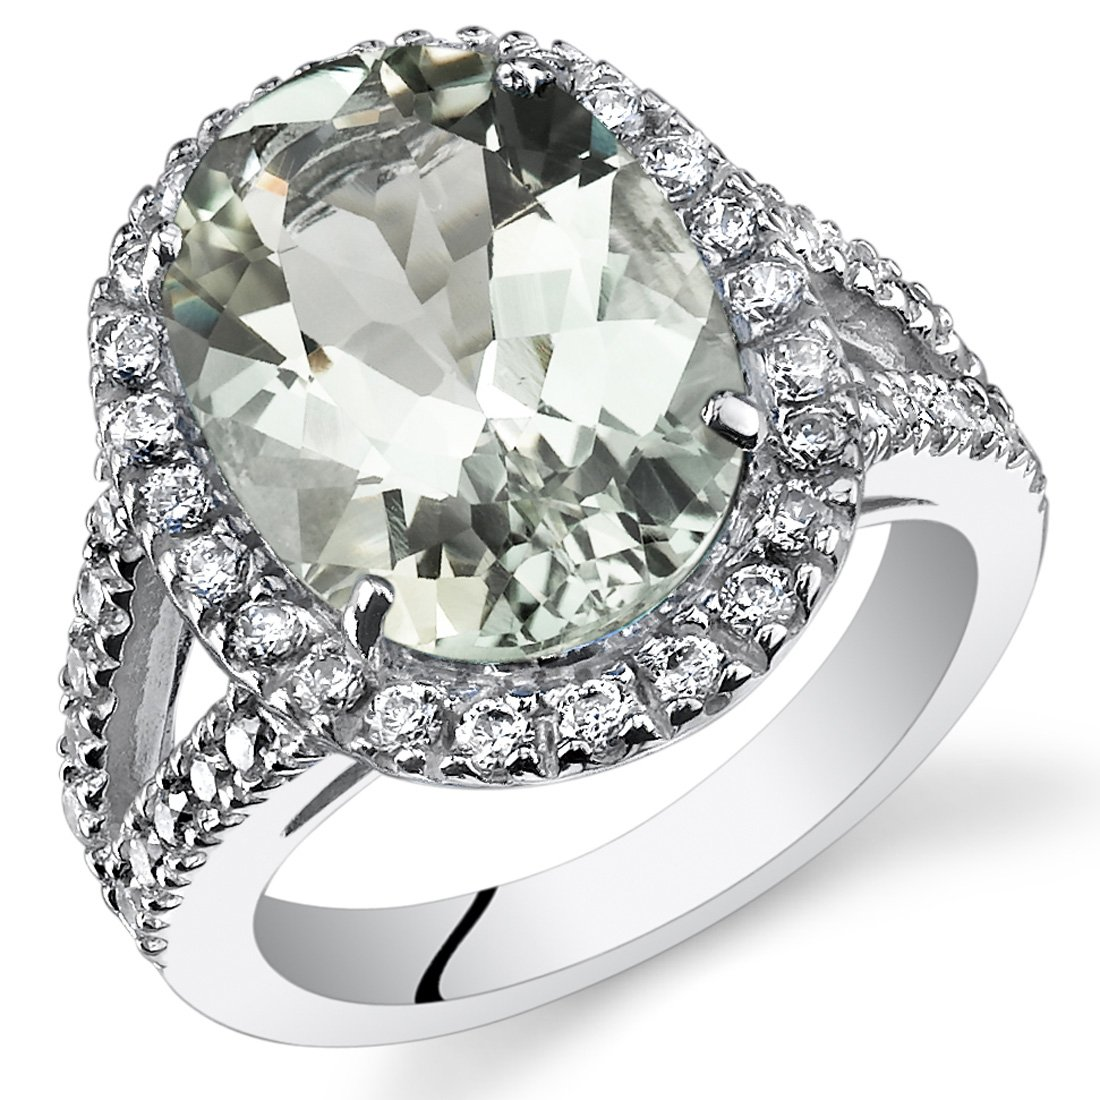 5.25 Carats Green Amethyst Engagement Ring Sterling Silver Size 6